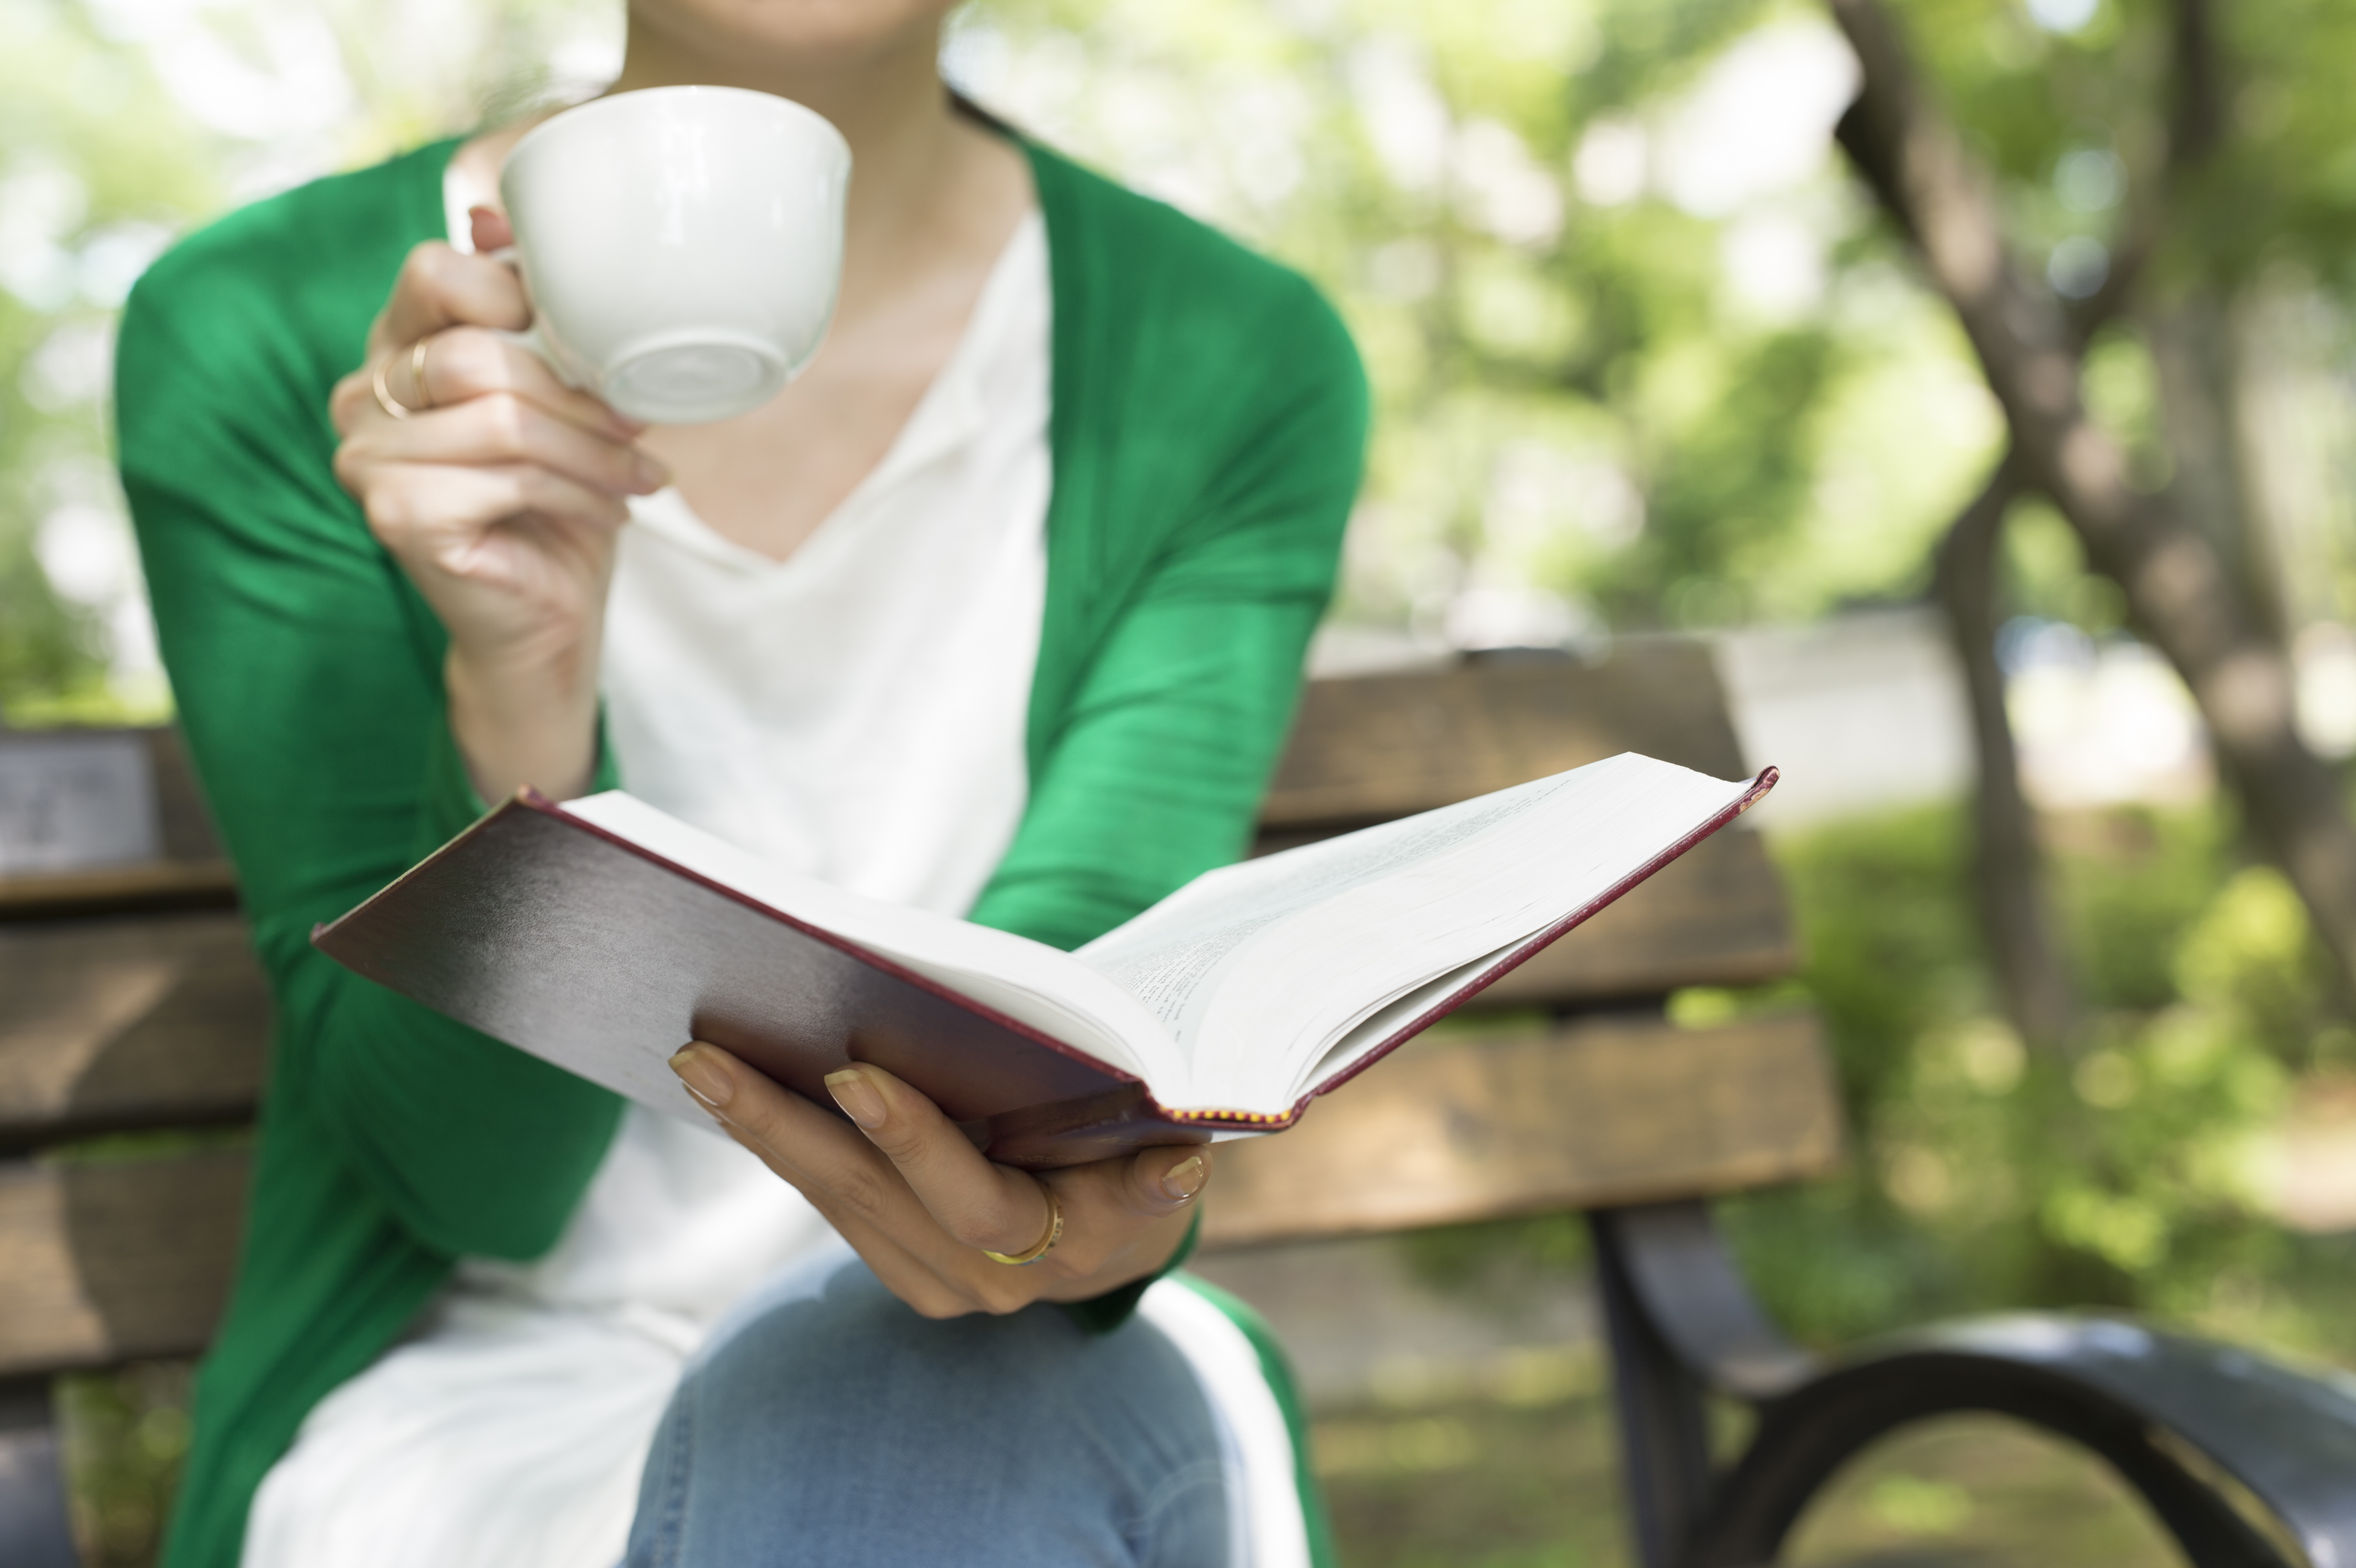 Women have a reading with a cup of coffee in the park